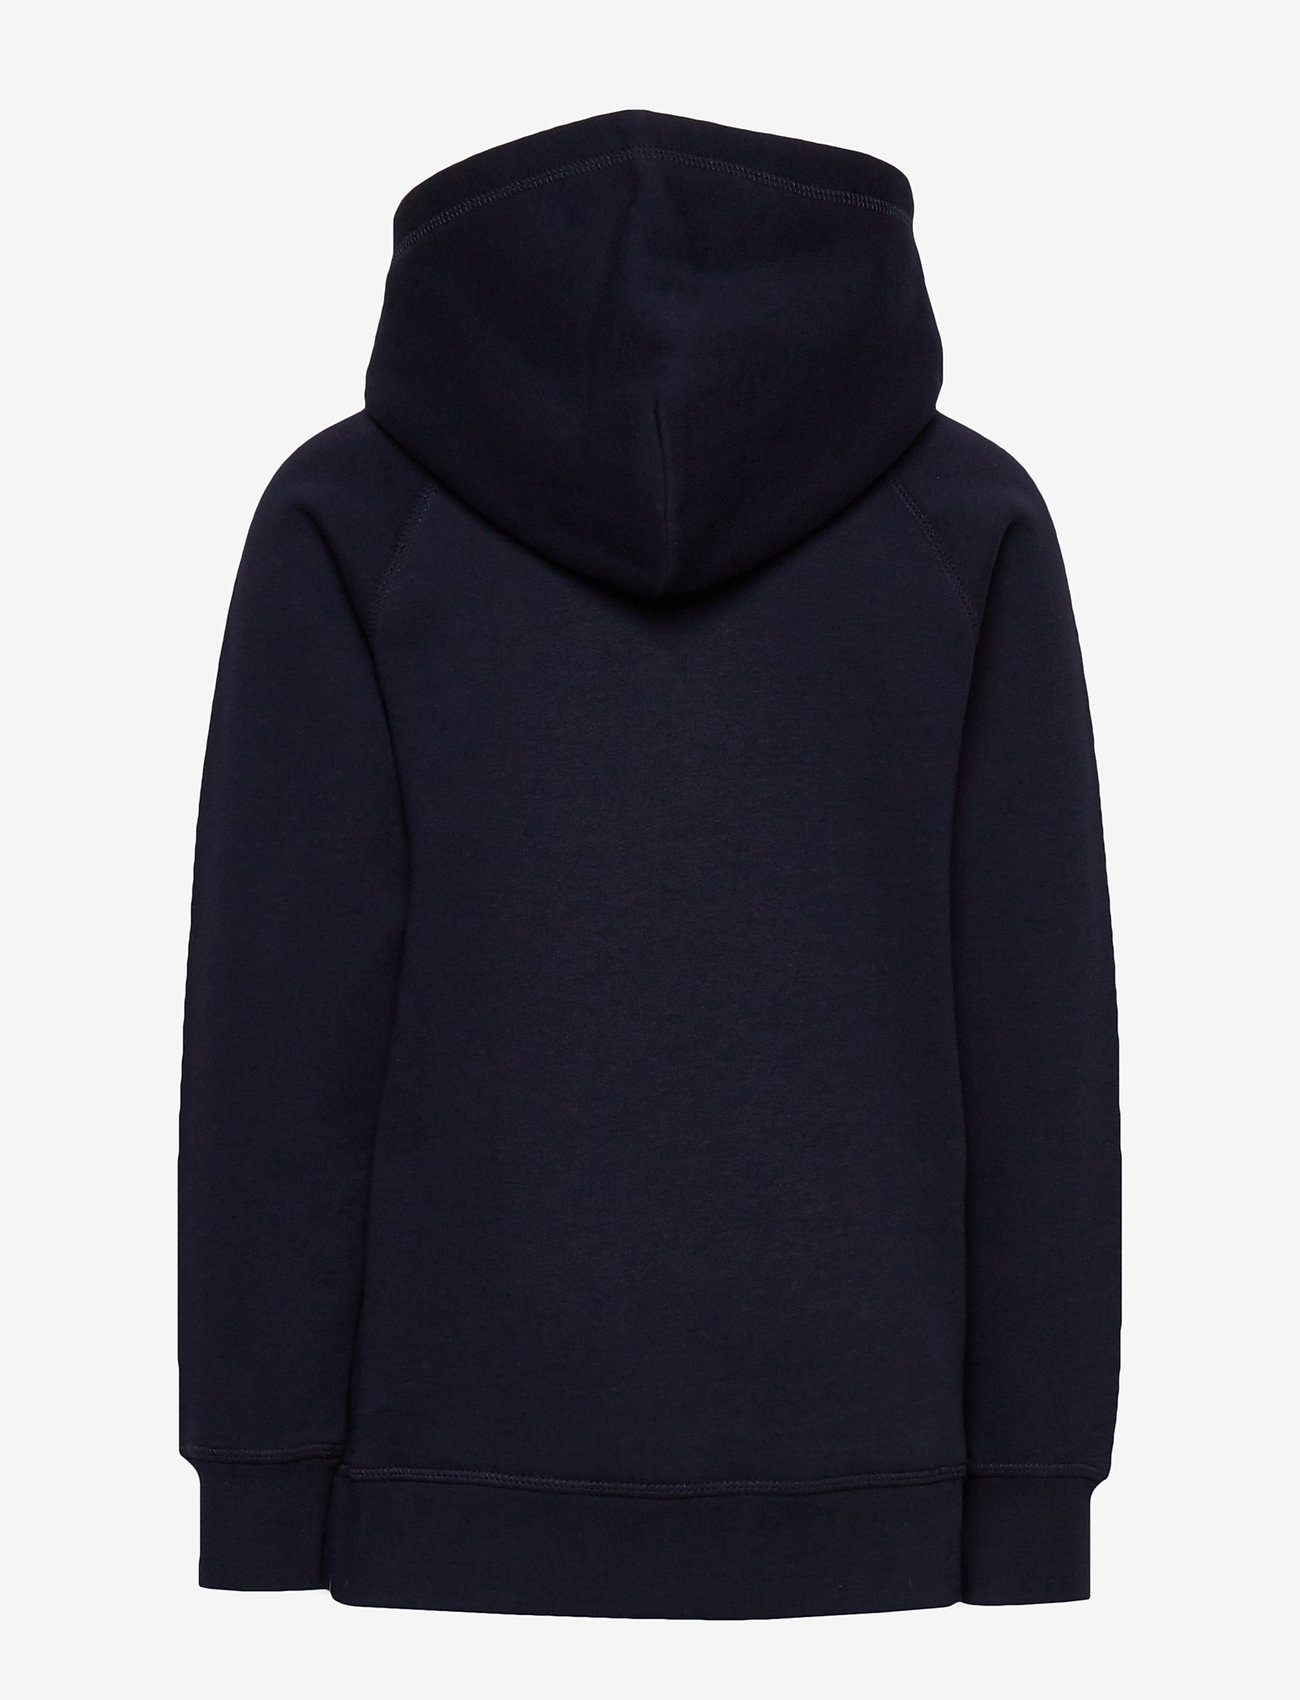 GANT - LOCK UP HOODIE - hoodies - evening blue - 1